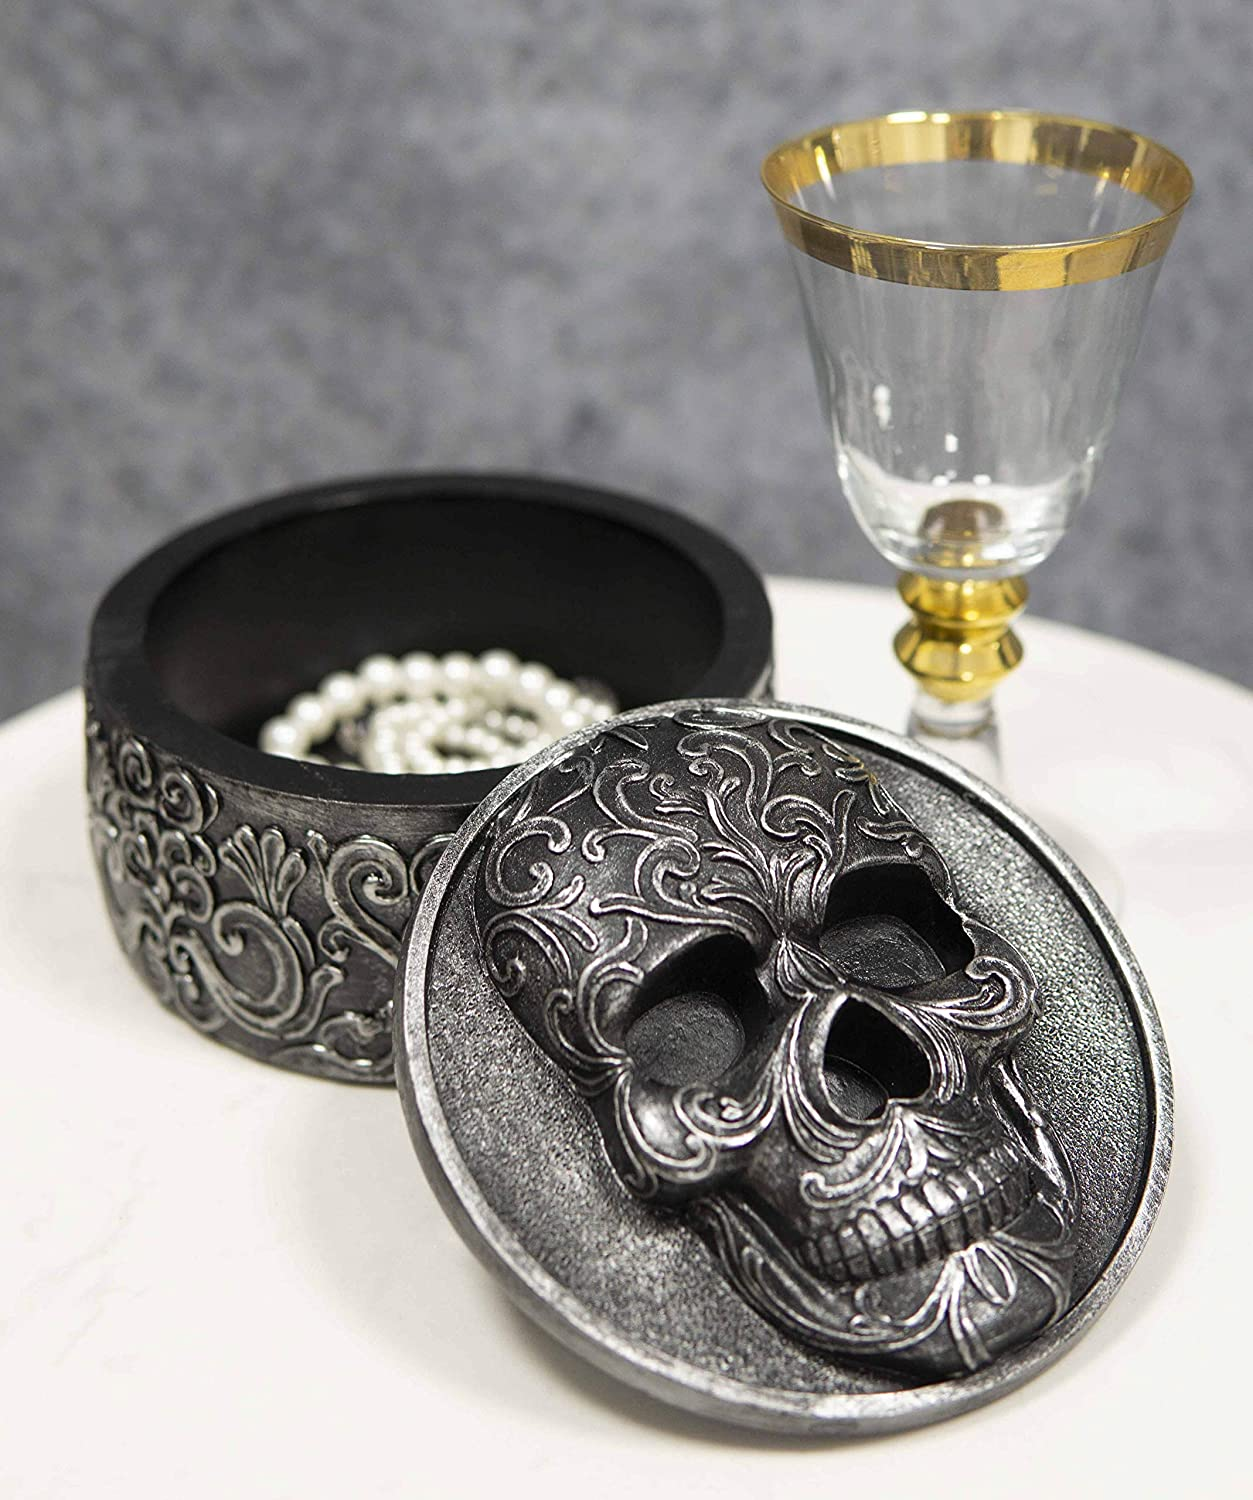 """Ebros Gift Day Of The Dead Ossuary Secrets Of The Macabre Vintage Gothic Tooled Floral Skull Round Decorative Box Jewelry Box Figurine 5.75""""W Skull Skeletons Halloween Decor"""